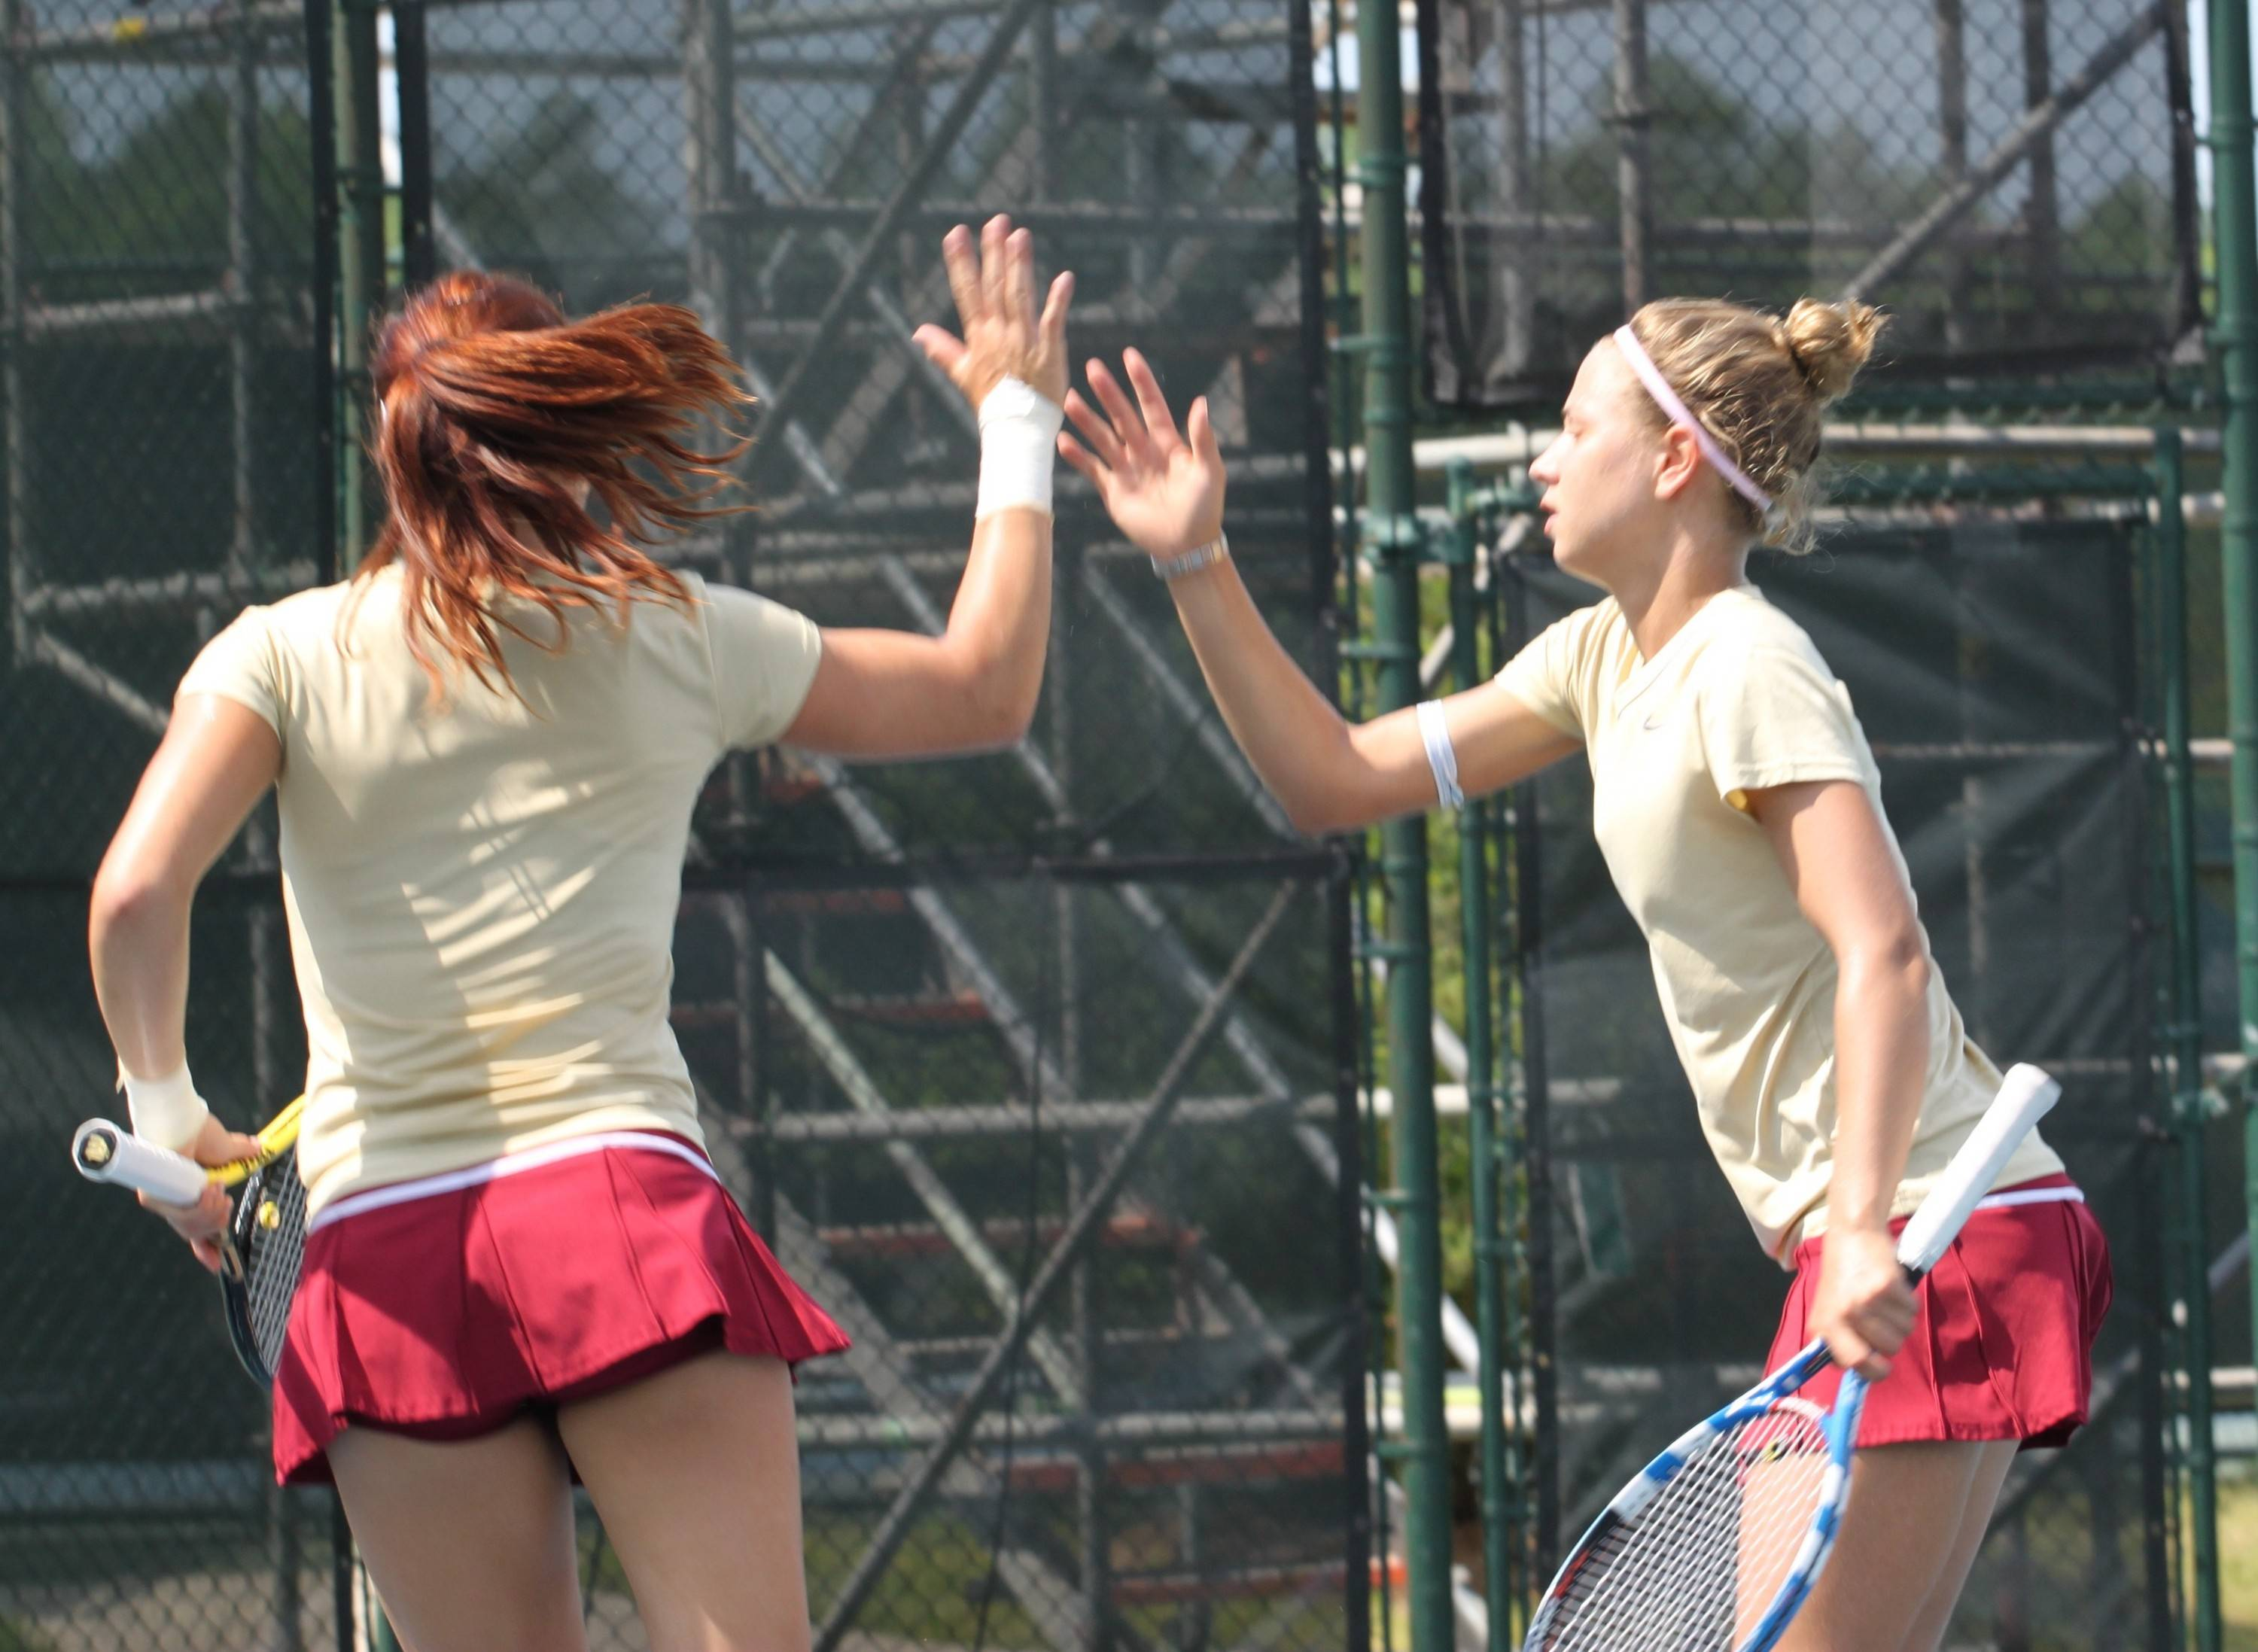 Noemie Scharle and Federica Suess in doubles.